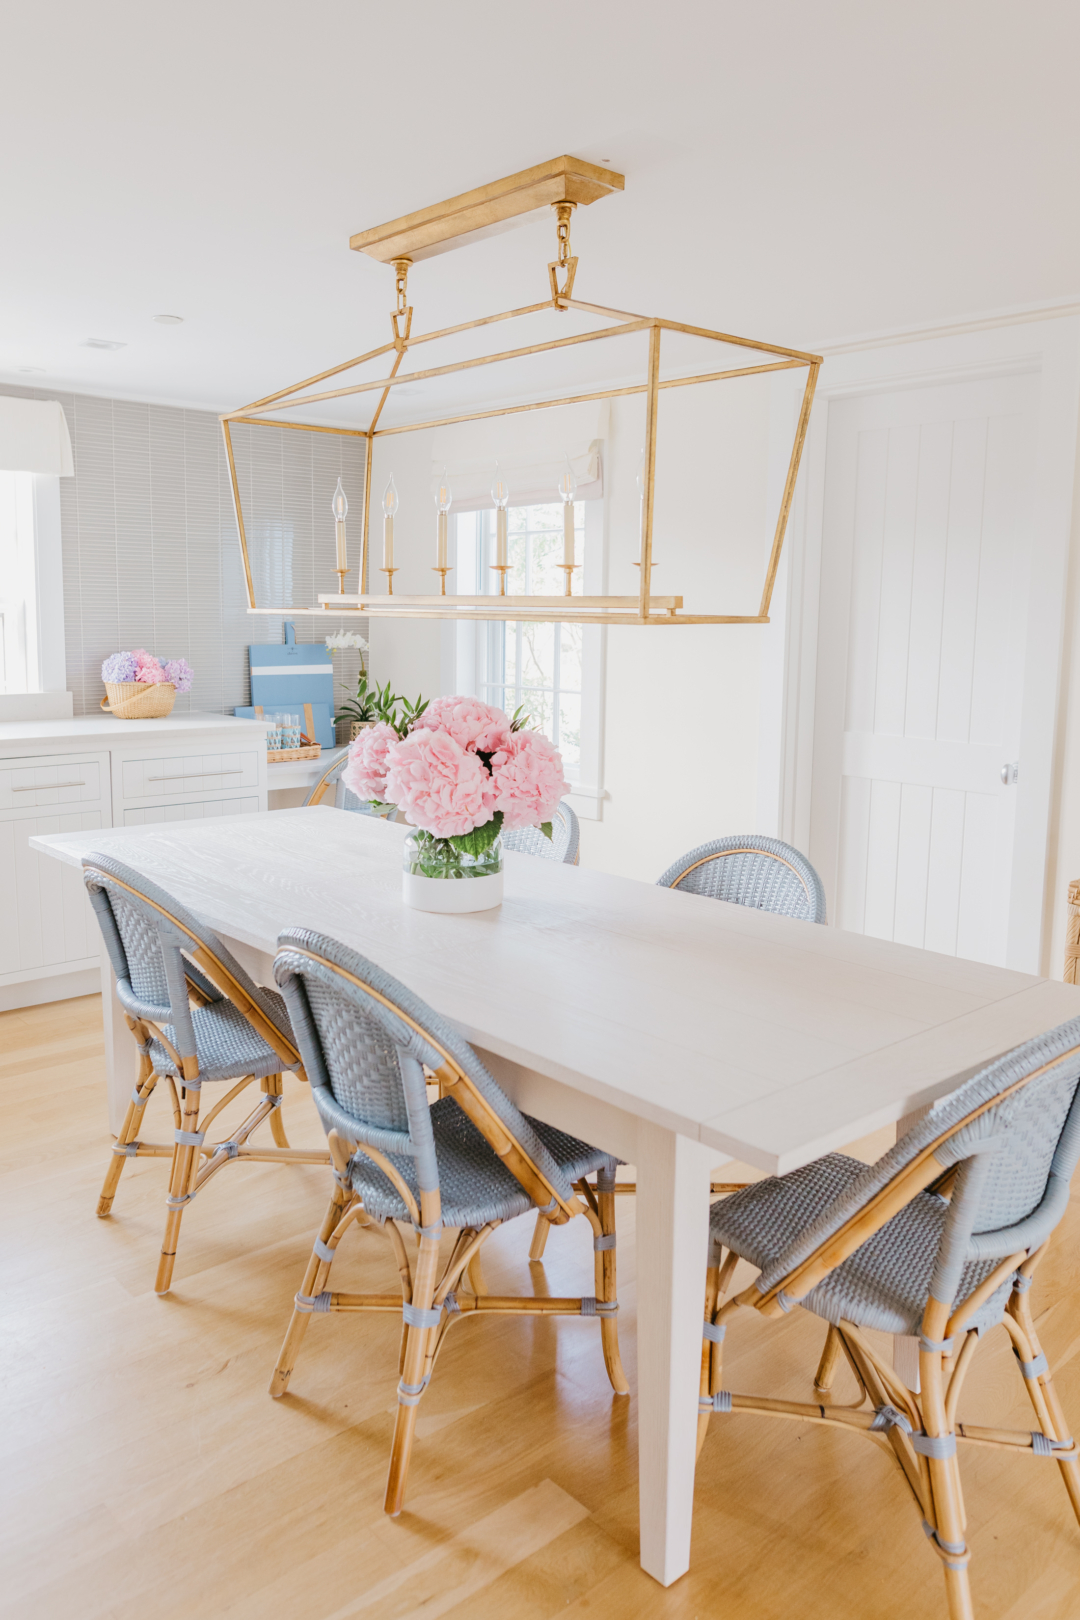 Travel: Designing the Endeavor Cottage with Serena & Lily at Inspirato's Harborview Nantucket